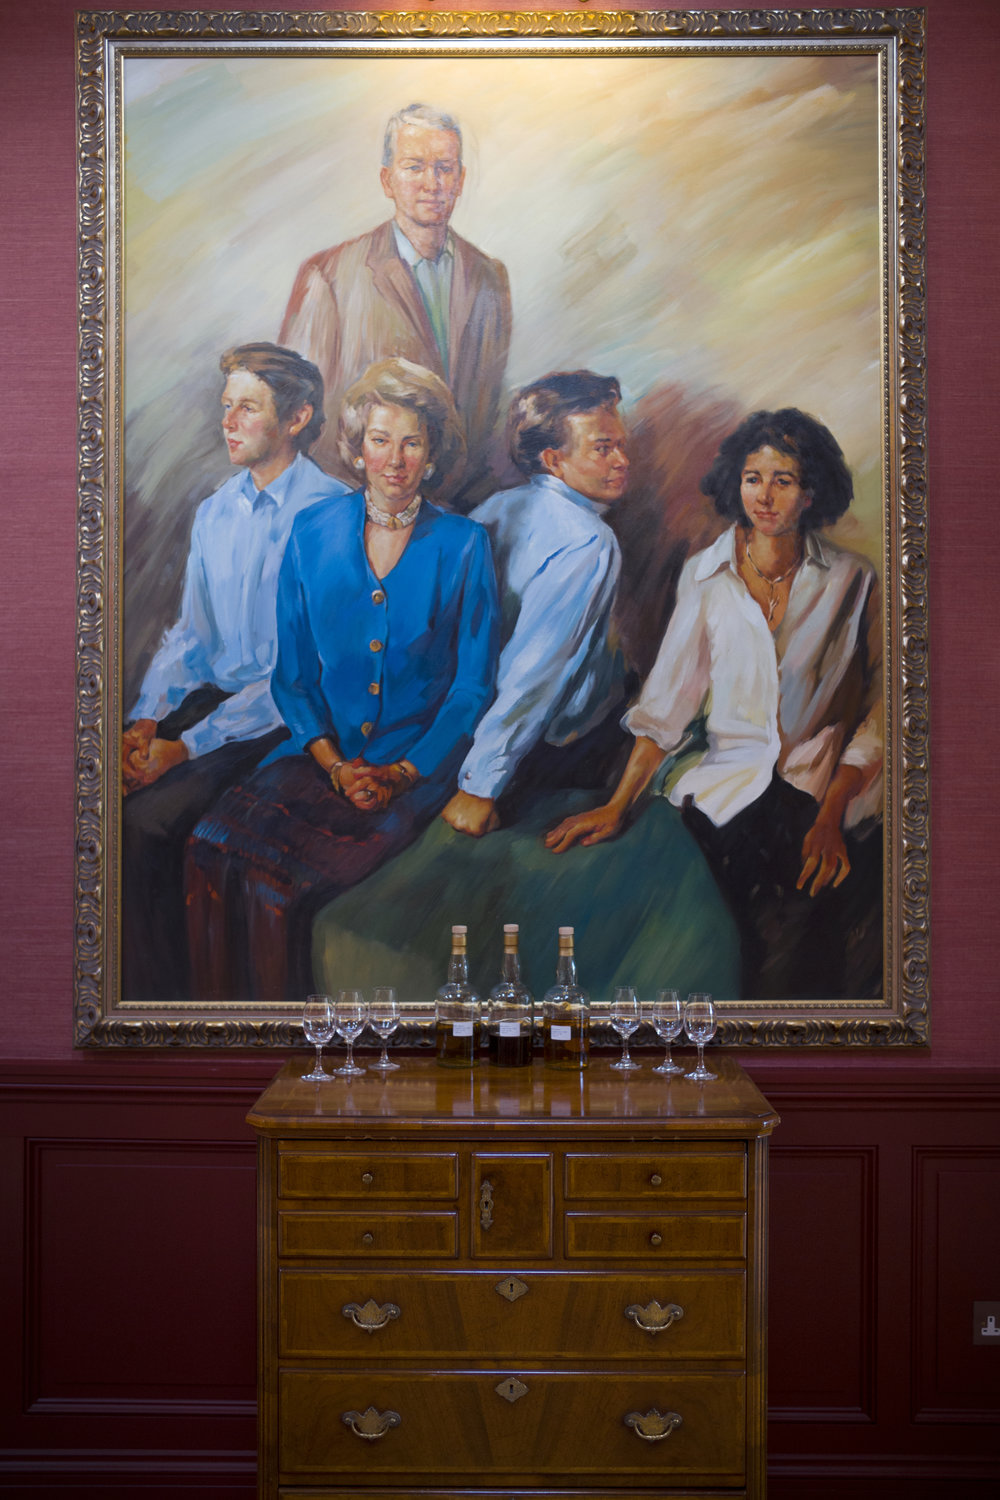 A portrait of the Macpherson-Grant family hangs in the Ballindalloch Distillery,